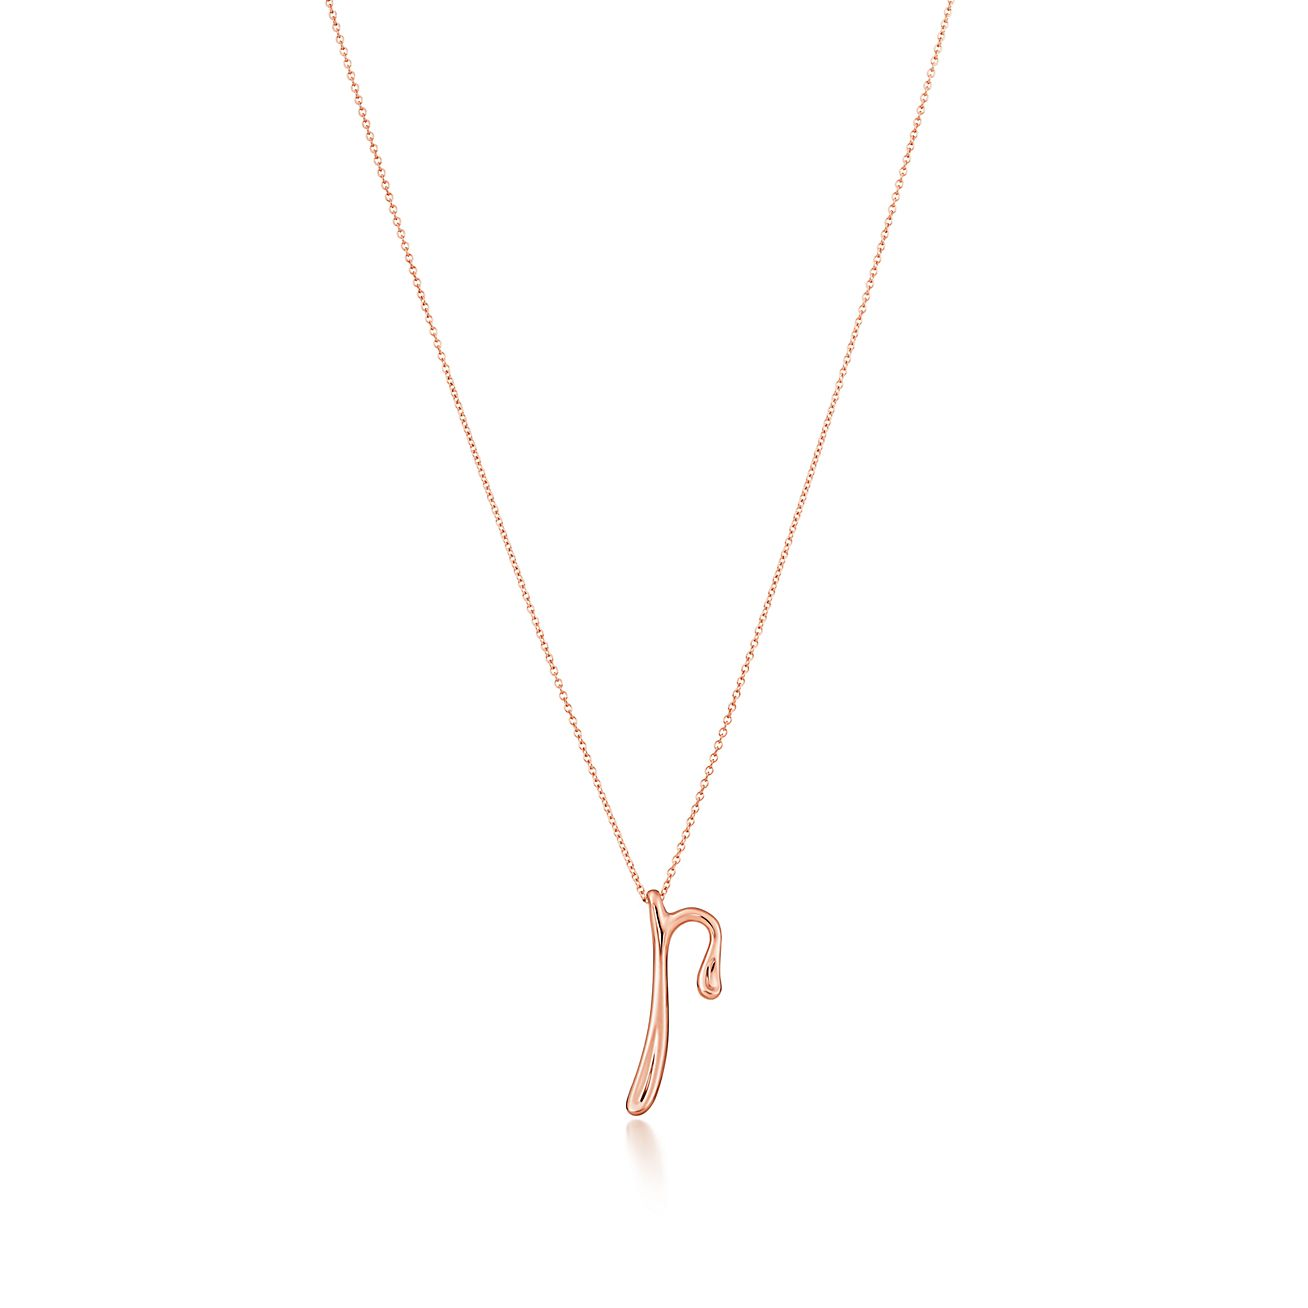 Elsa Peretti Alphabet pendant in 18k rose gold Letters A-Z available - Size Q Tiffany & Co.